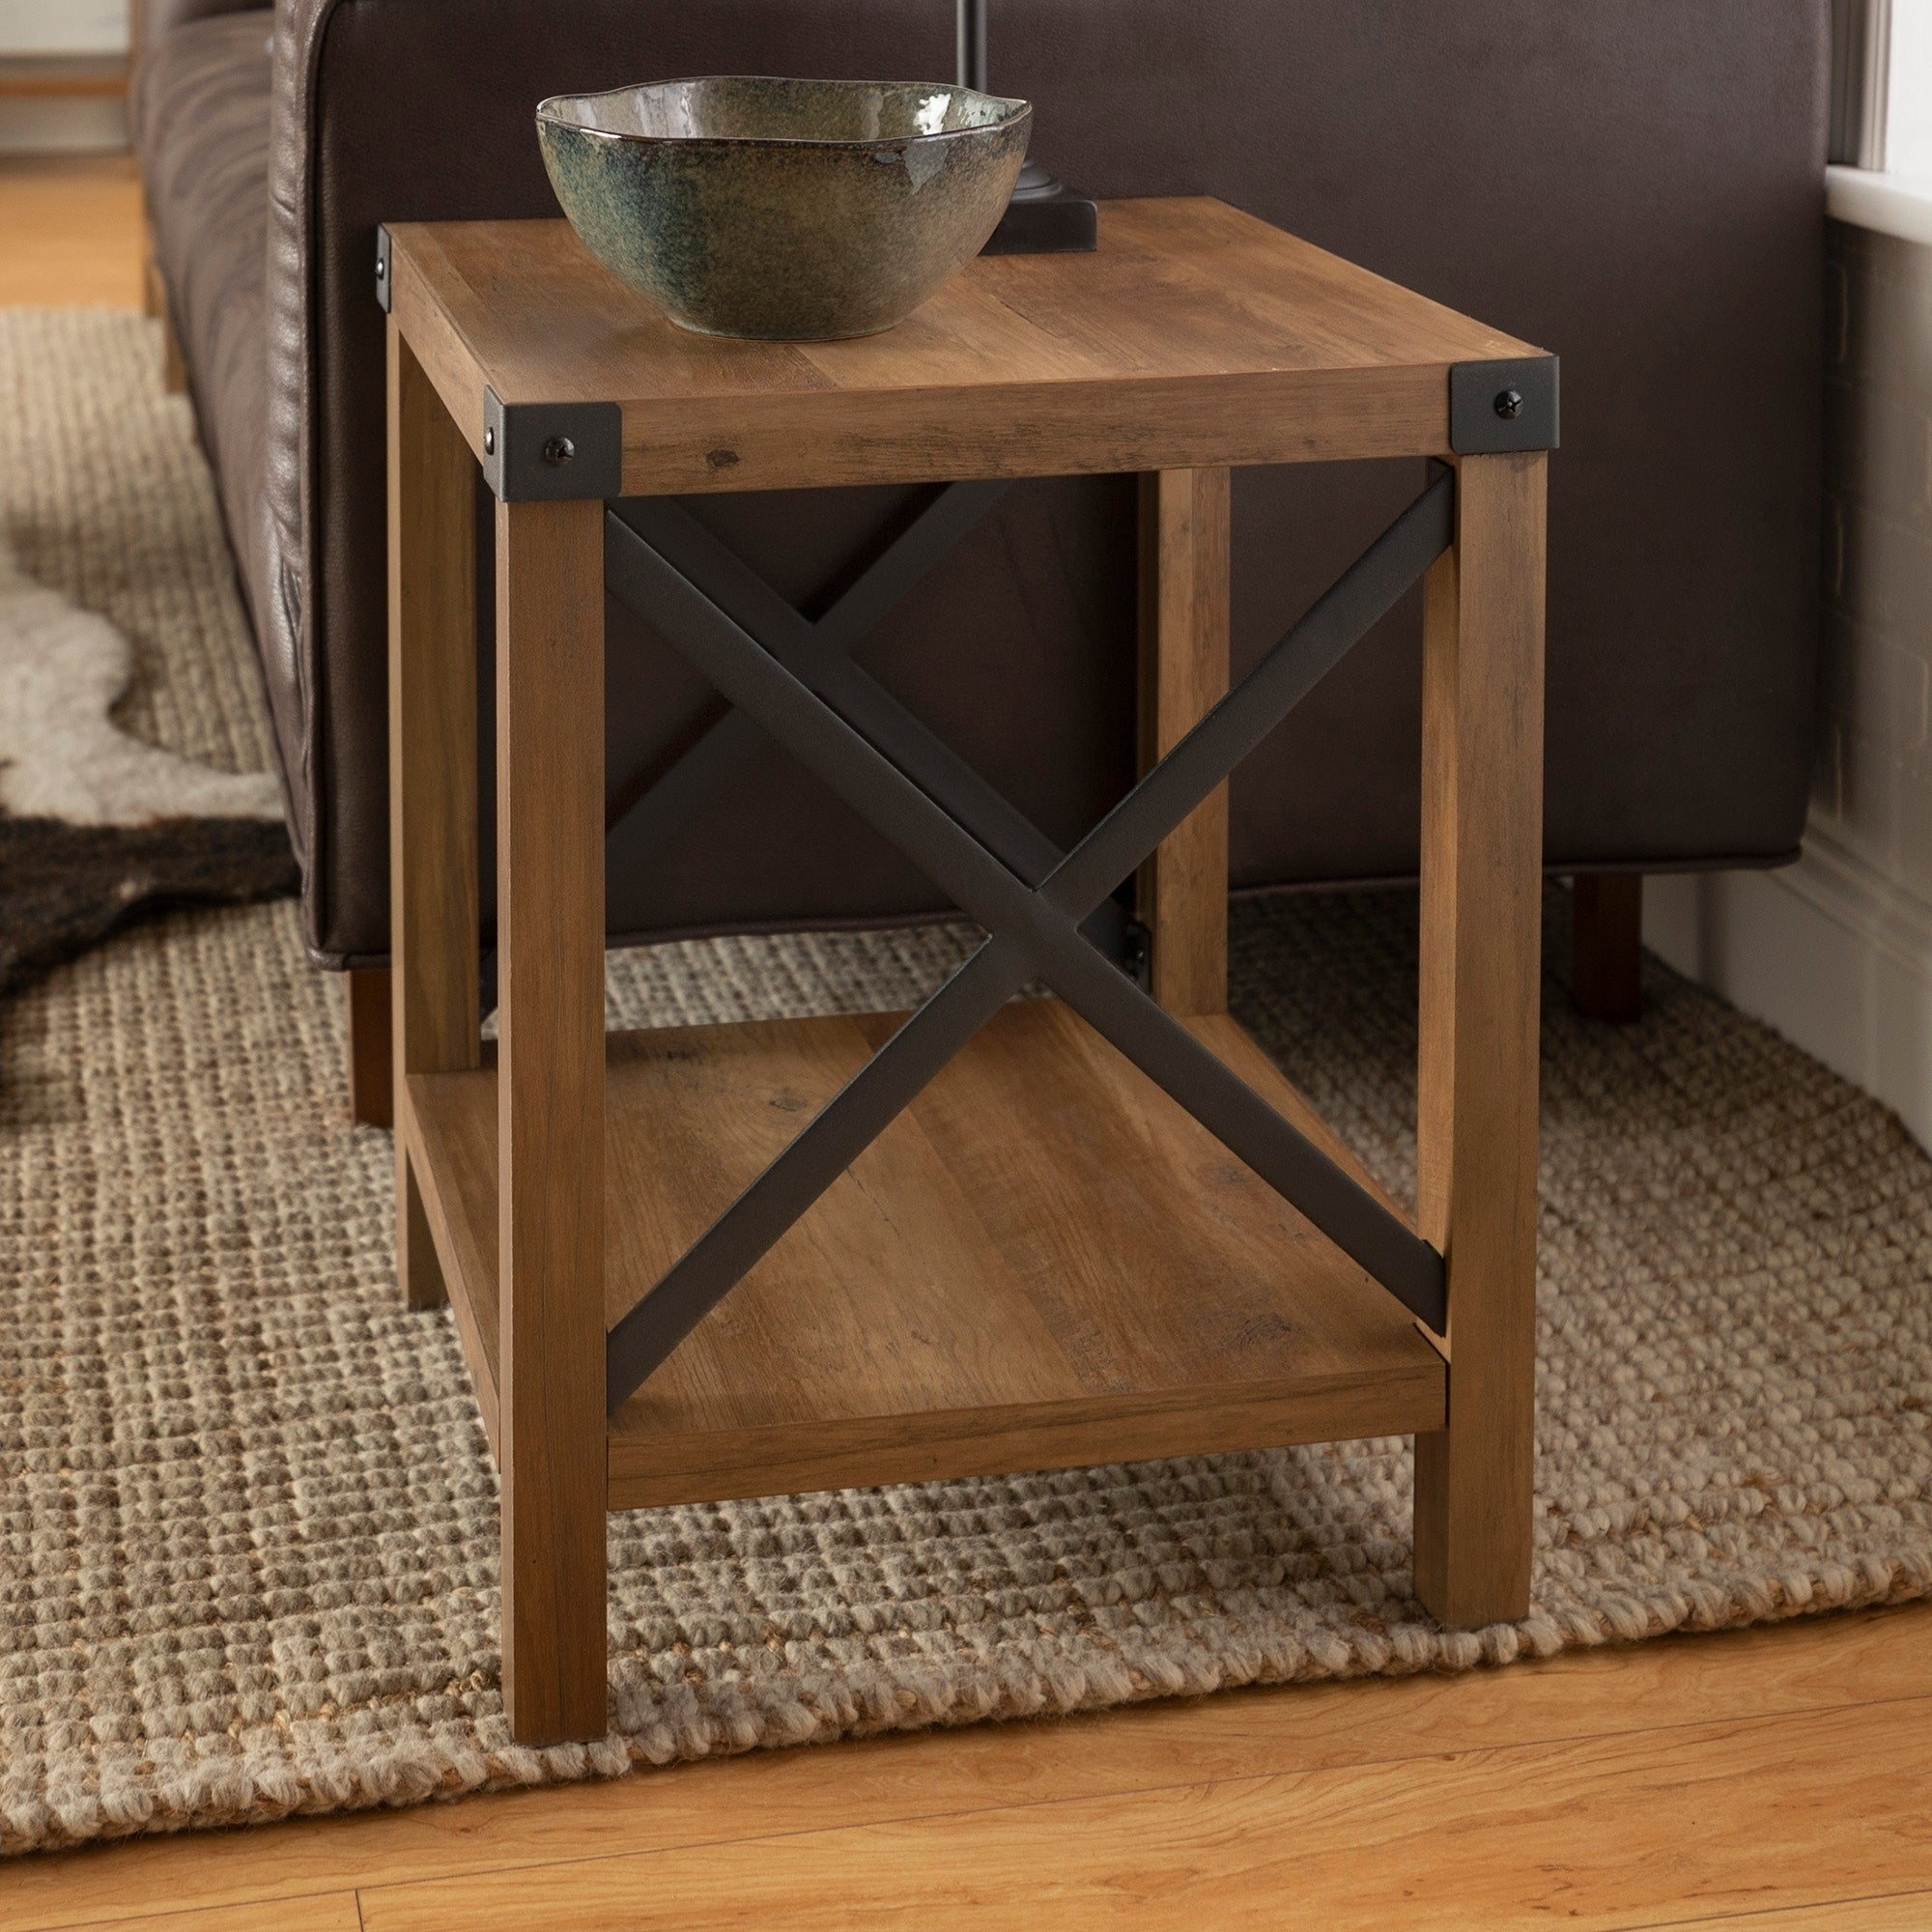 The Gray Barn 18-inch Kujawa Rustic Side, End Table, Farmhouse X-frame for  Living Room - 18 x 18 x 22h